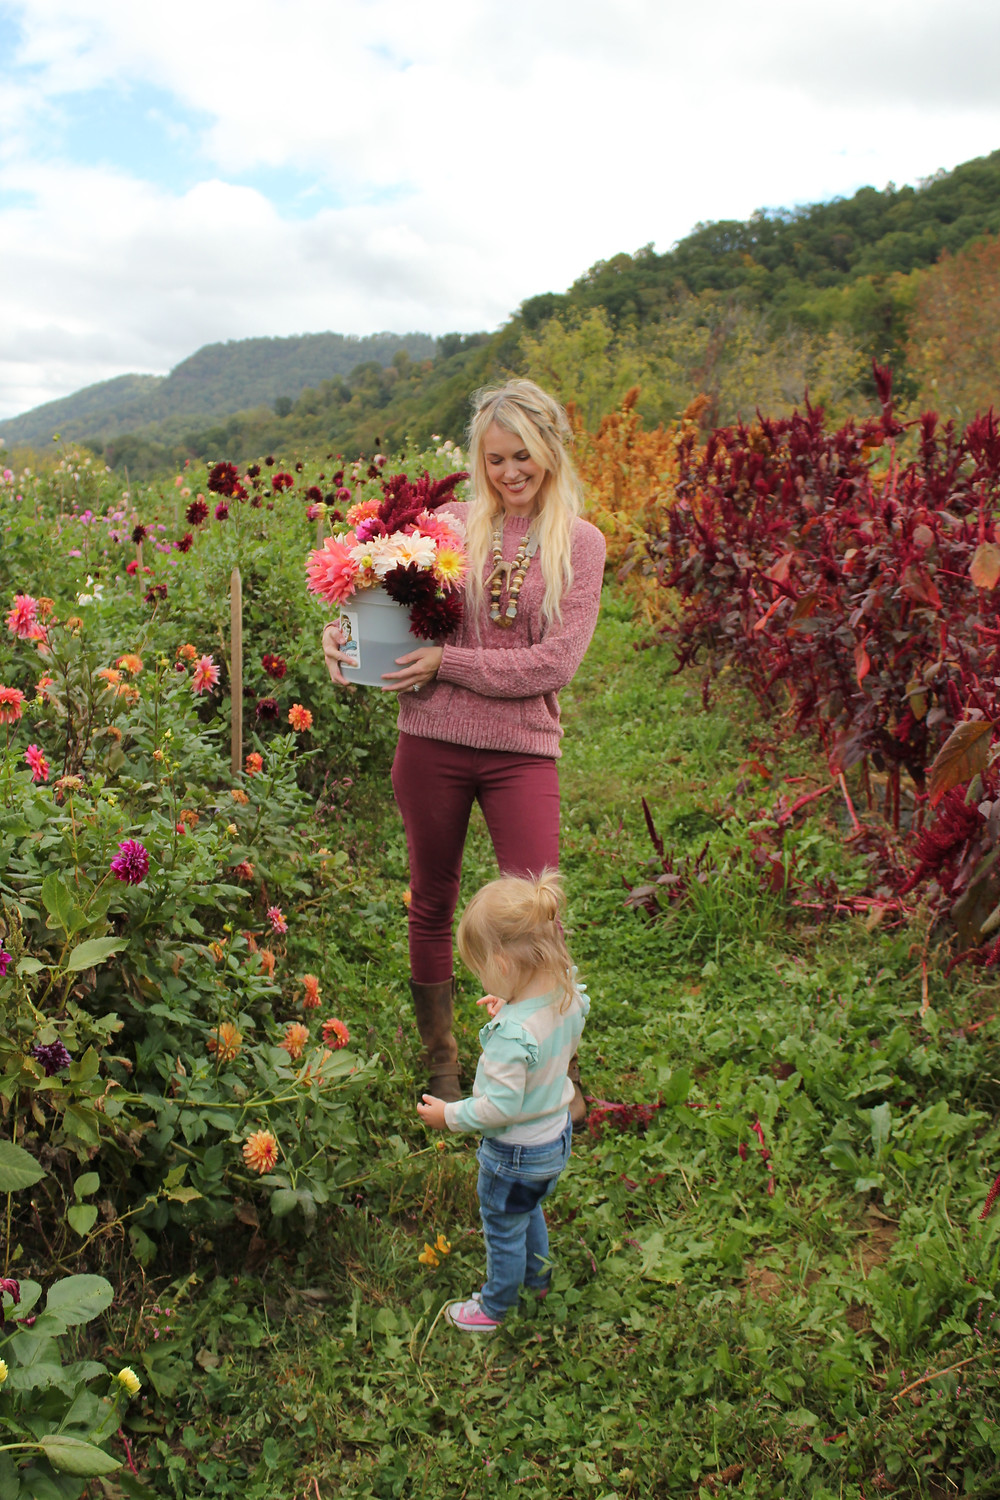 Brooke smiles at Harlow as they walk through Lady Luck Flower Farm in Asheville, NC.